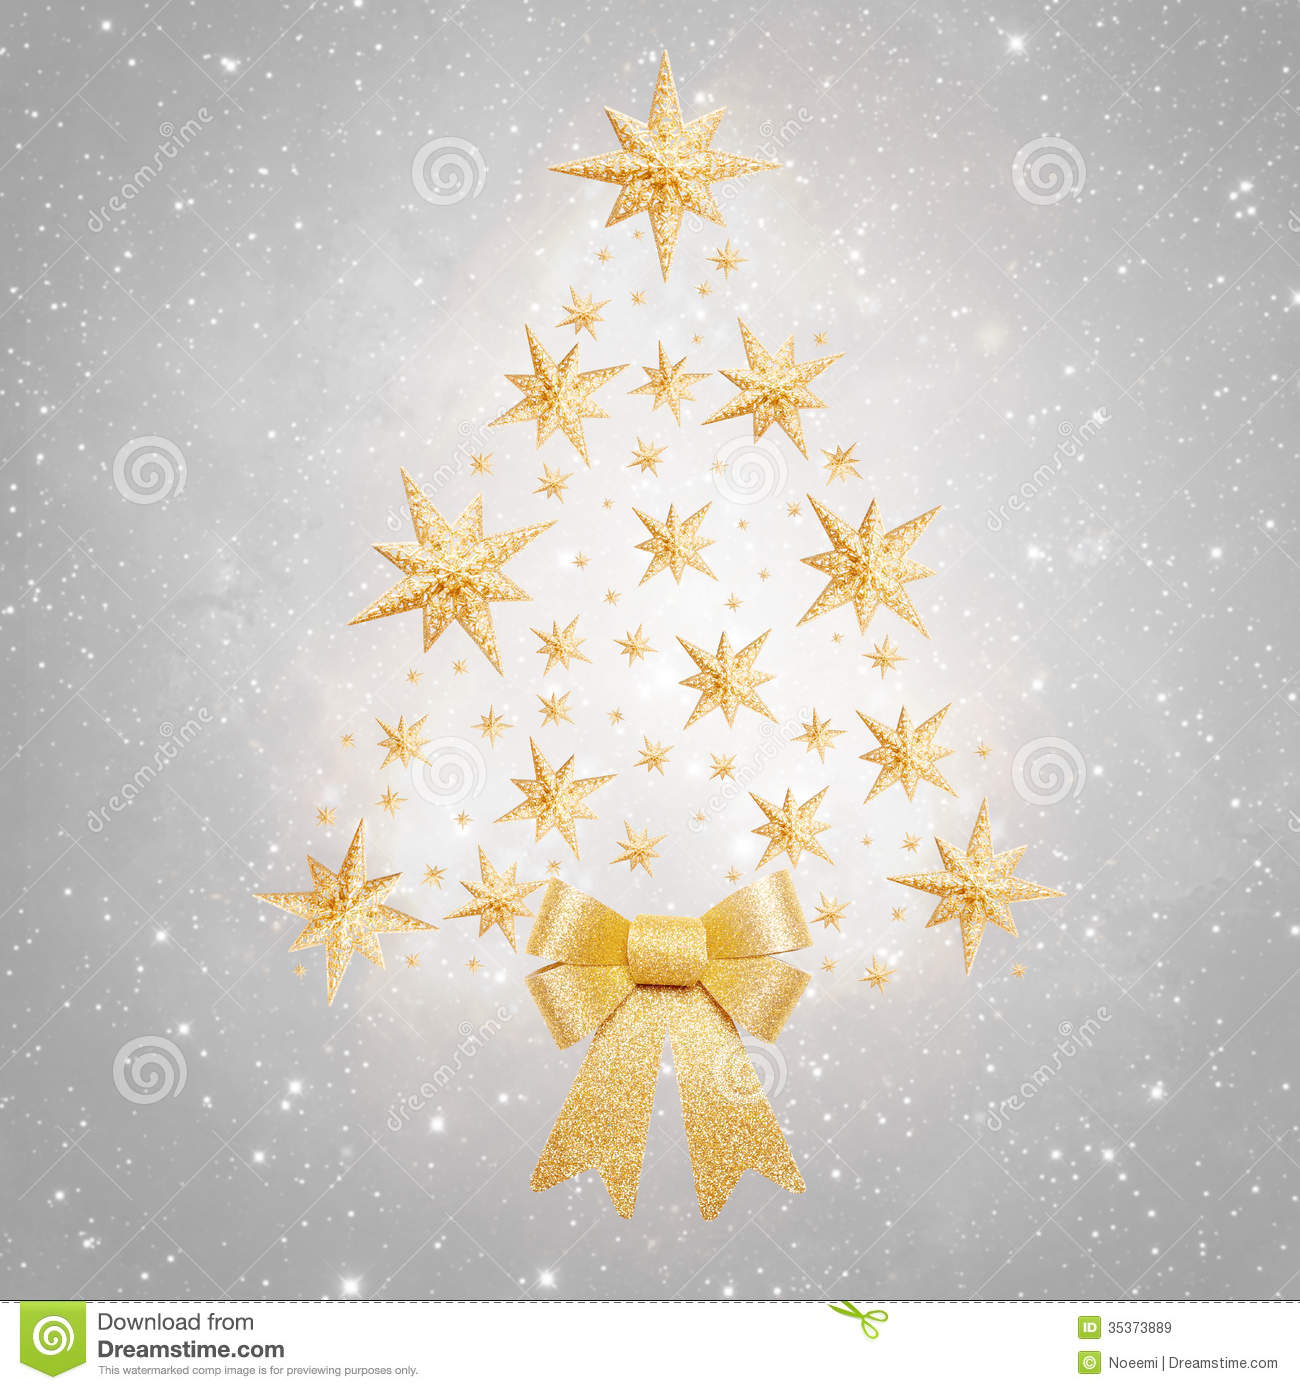 Christmas background - tree made of stars on silver background